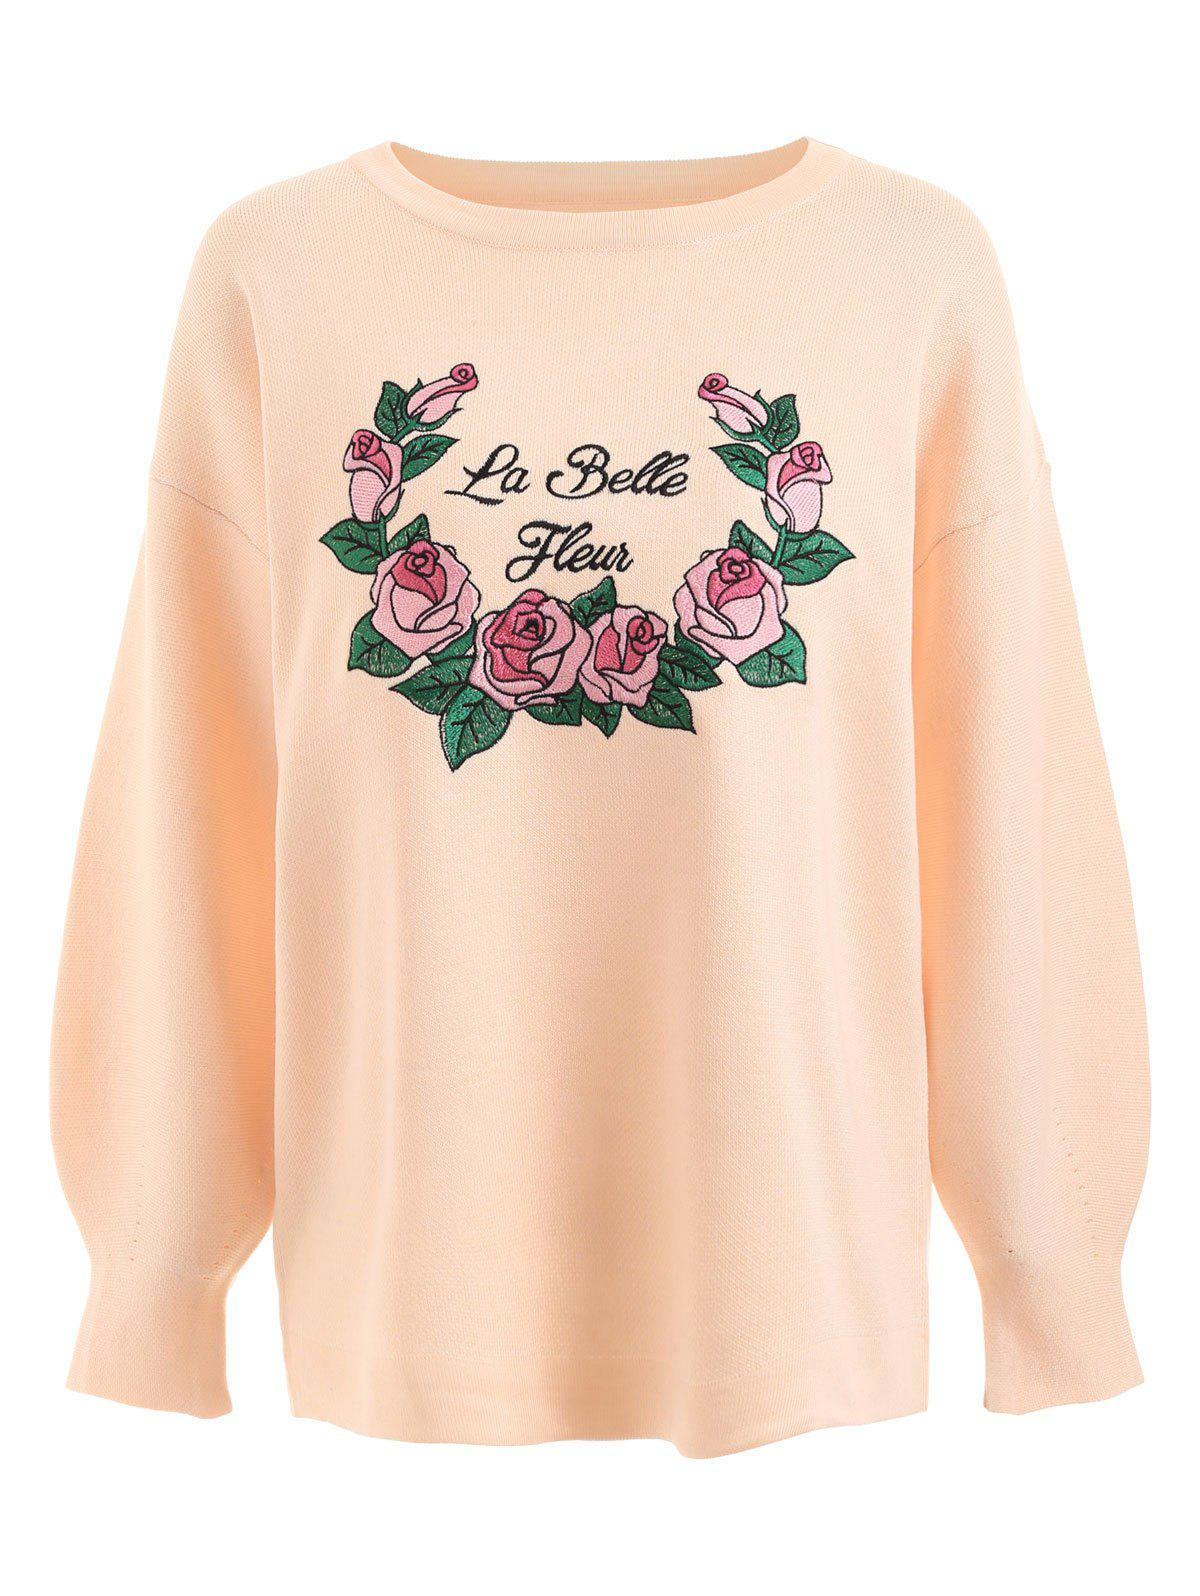 Hot Floral Letter Embroidered Plus Size Sweater